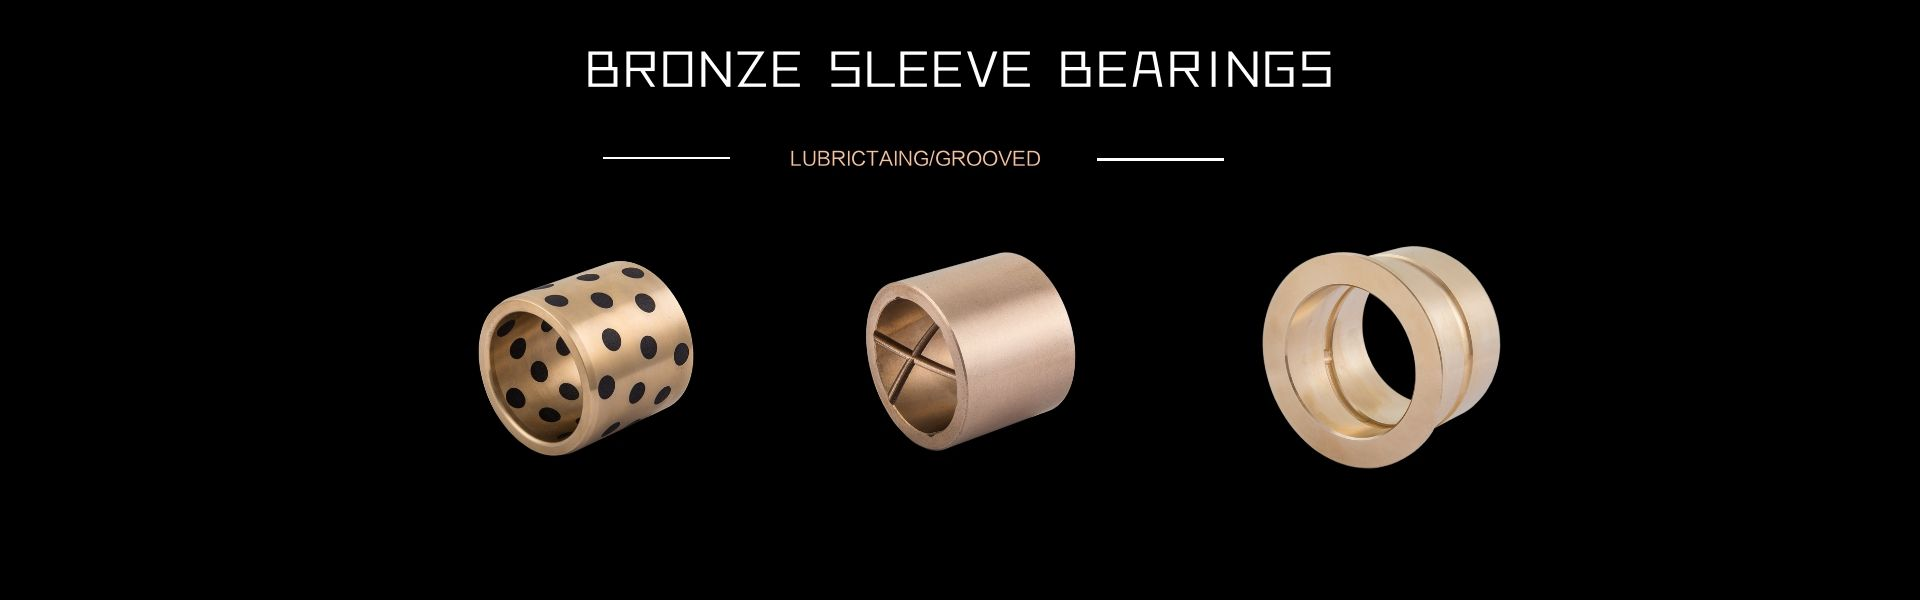 PLUG GRAPHITE BEARINGS, C86300 BUSHINGS, C93200 BUSHINGS, SLIDING BEARINGS MATERIALS, CUSN8 & CUSN6 BRONZE BUSHINGS, CUSTOM BUSHINGS, TOLERANCES, MADE-TO-ORDER, METRIC-SIZED-BUSHINGS, INCH-SIZED-BUSHINGS, WEAR PLATE, Promotion - Bronzesleeve.com